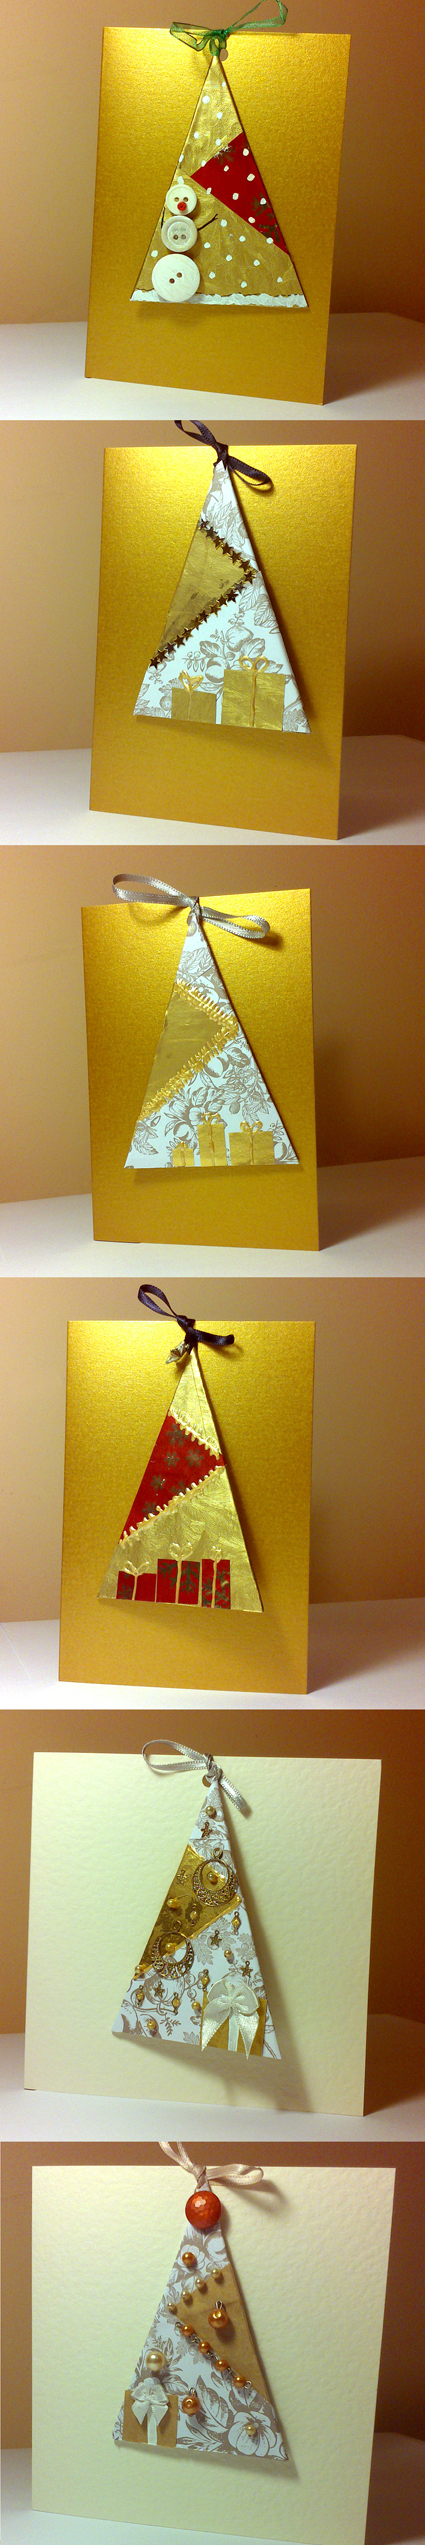 Handmade Christmas cards, includes a Christmas tree decoration | DIY | recycling used wrapping paper | repurposing old jewelry | gold and red